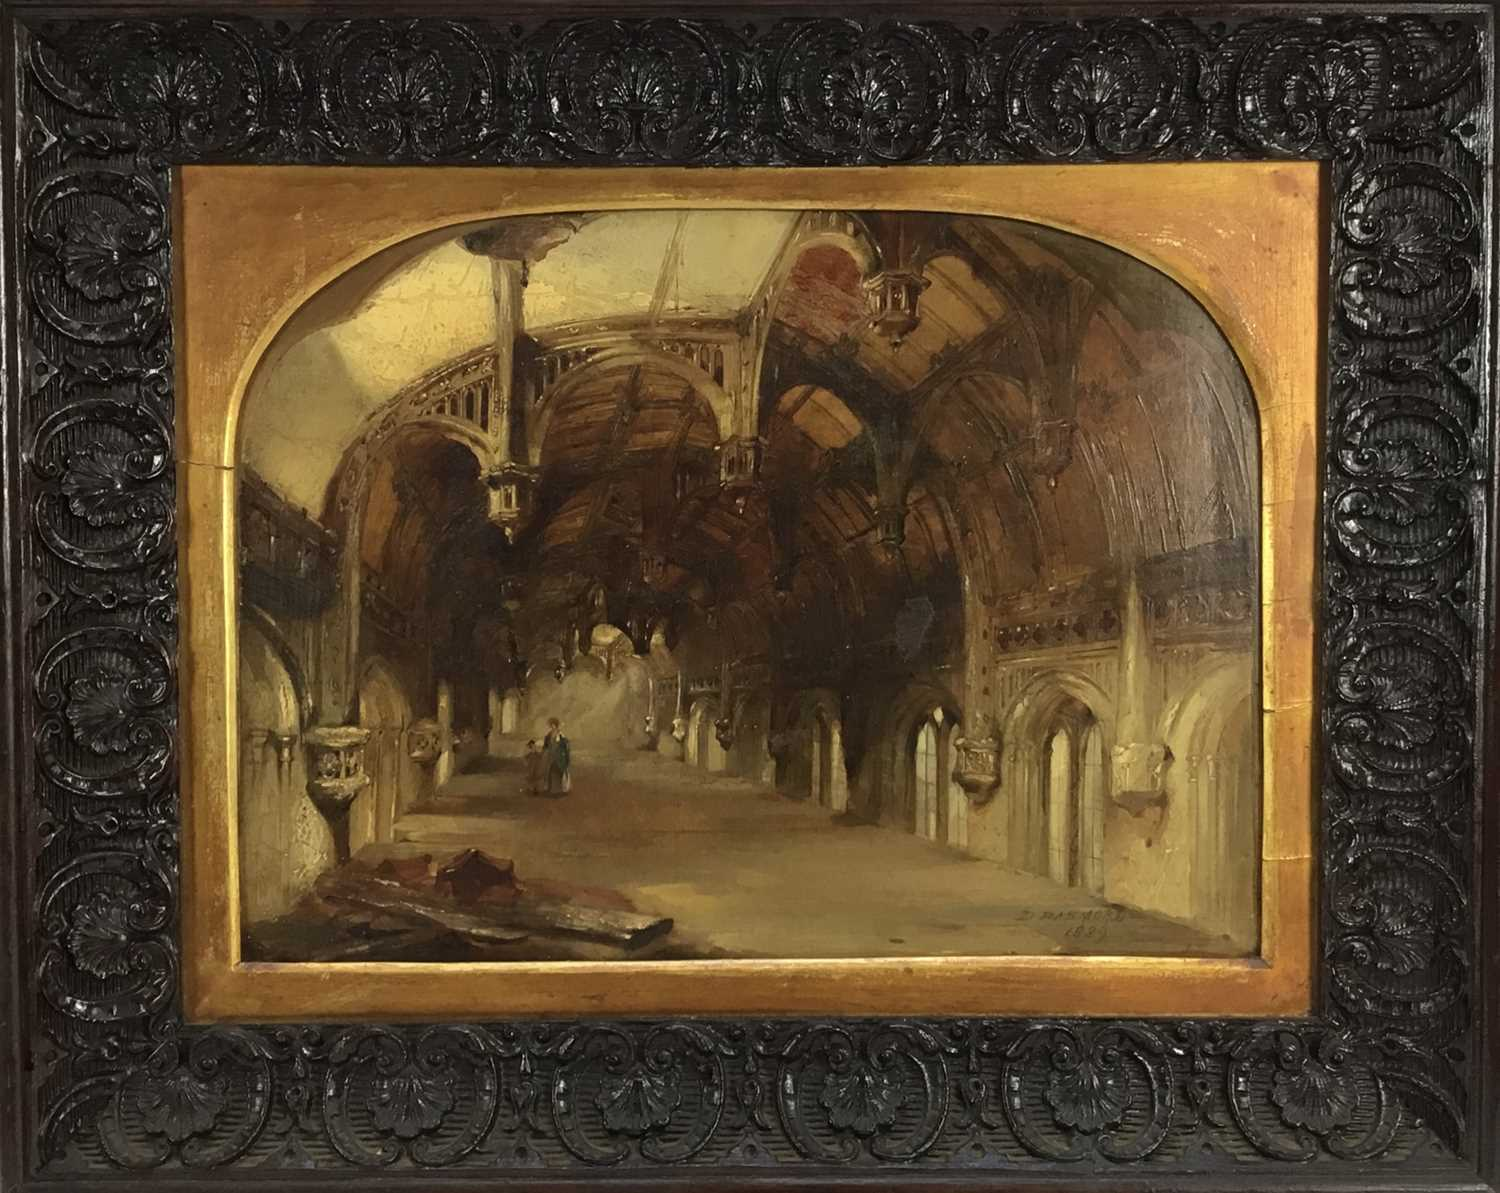 Daniel I Pasmore (act. 1829-1865) oil on canvas 'Crosby Hall', signed and dated 1836, 29 x 39cm, car